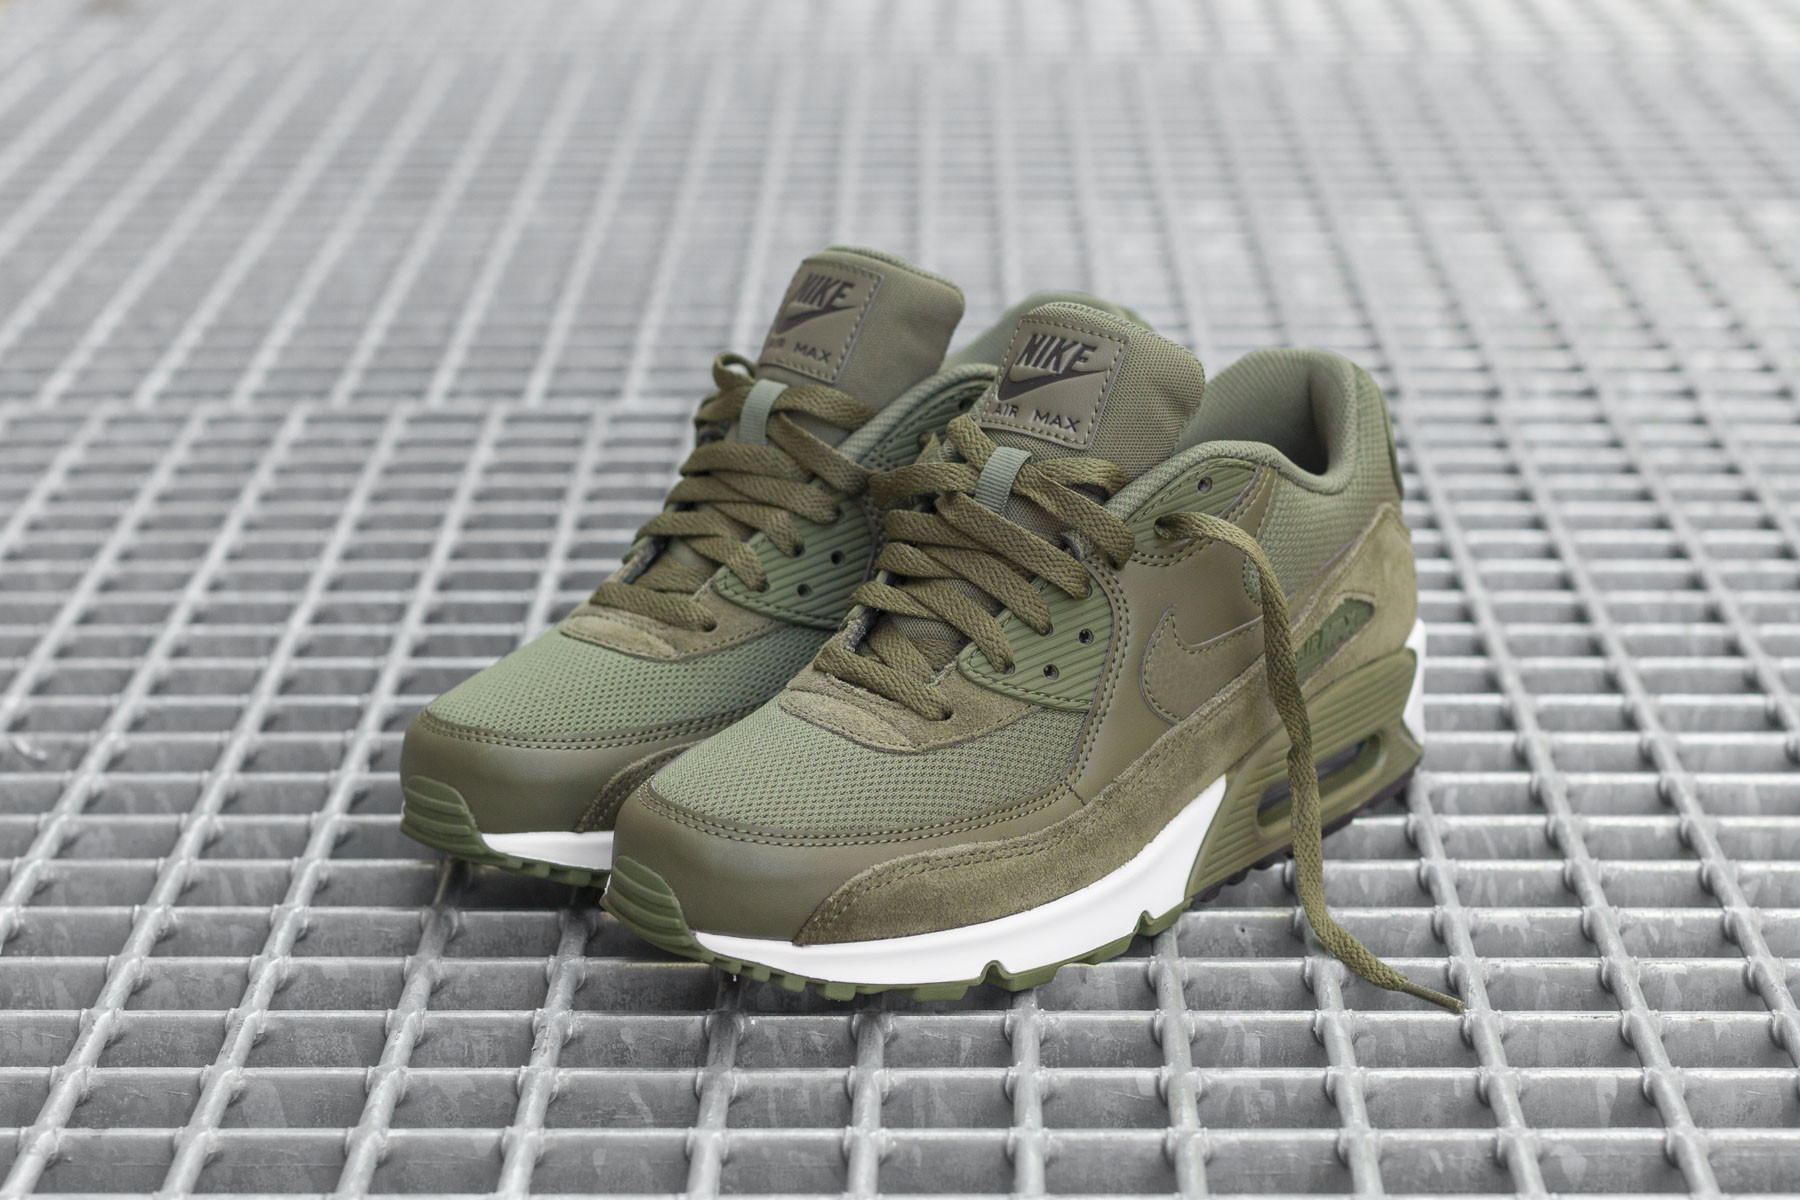 Nike Air Max 90 Essential Medium Olive 537384 201 | SneakerFiles